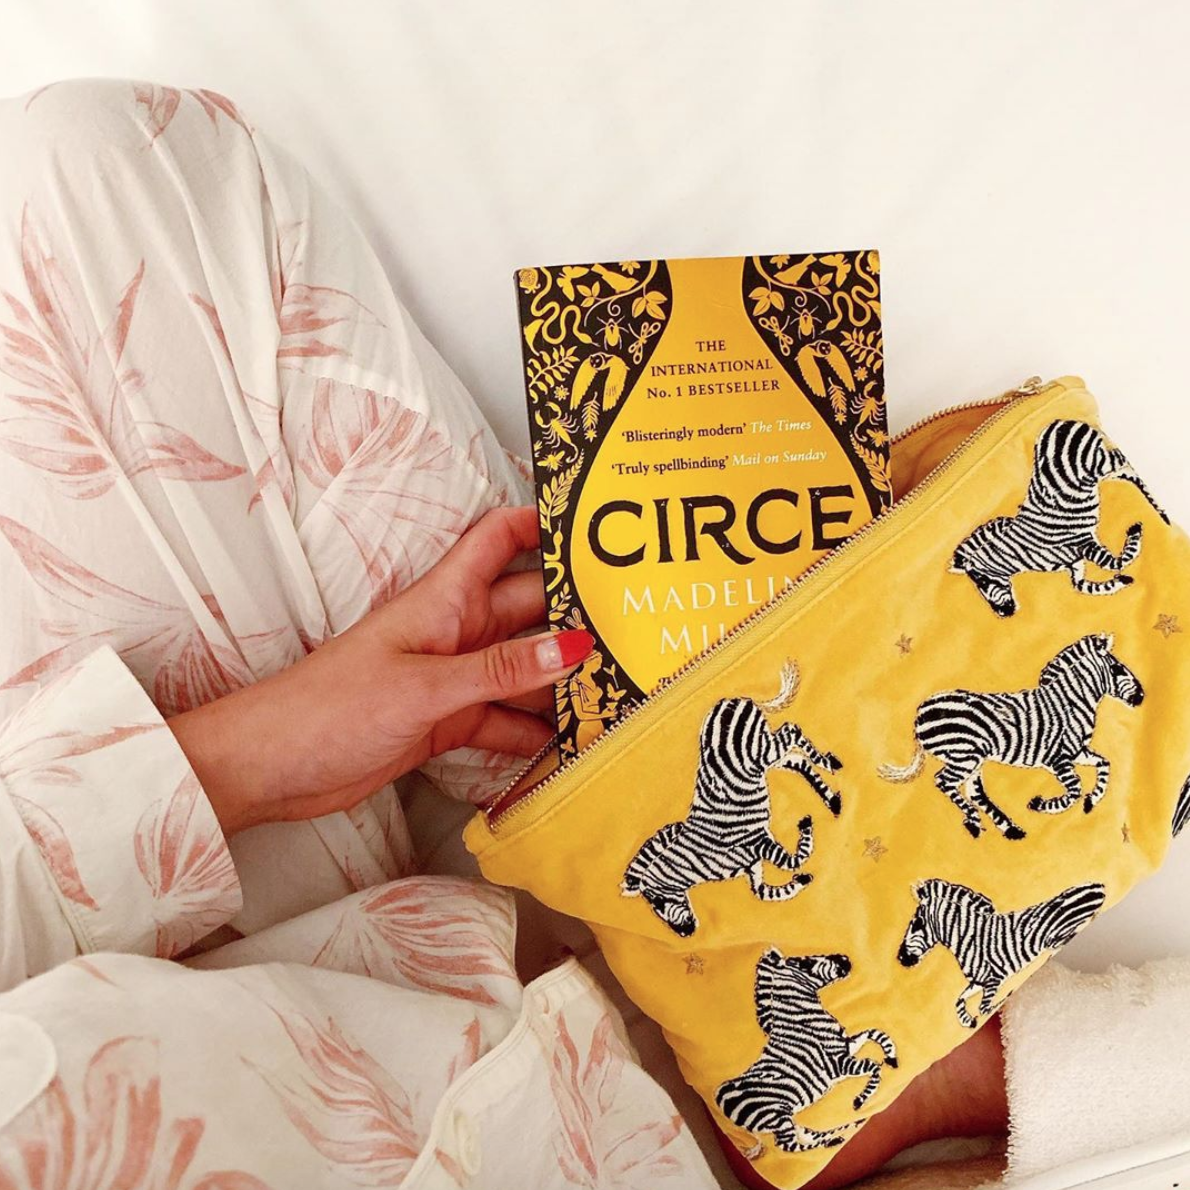 Circe by Madeline Miller - After ploughing through two Sally Rooney books at the speed of light, I've found it a little harder to get into my new read. But now that I've just about got my head around the mythological names, I'm pretty hooked.